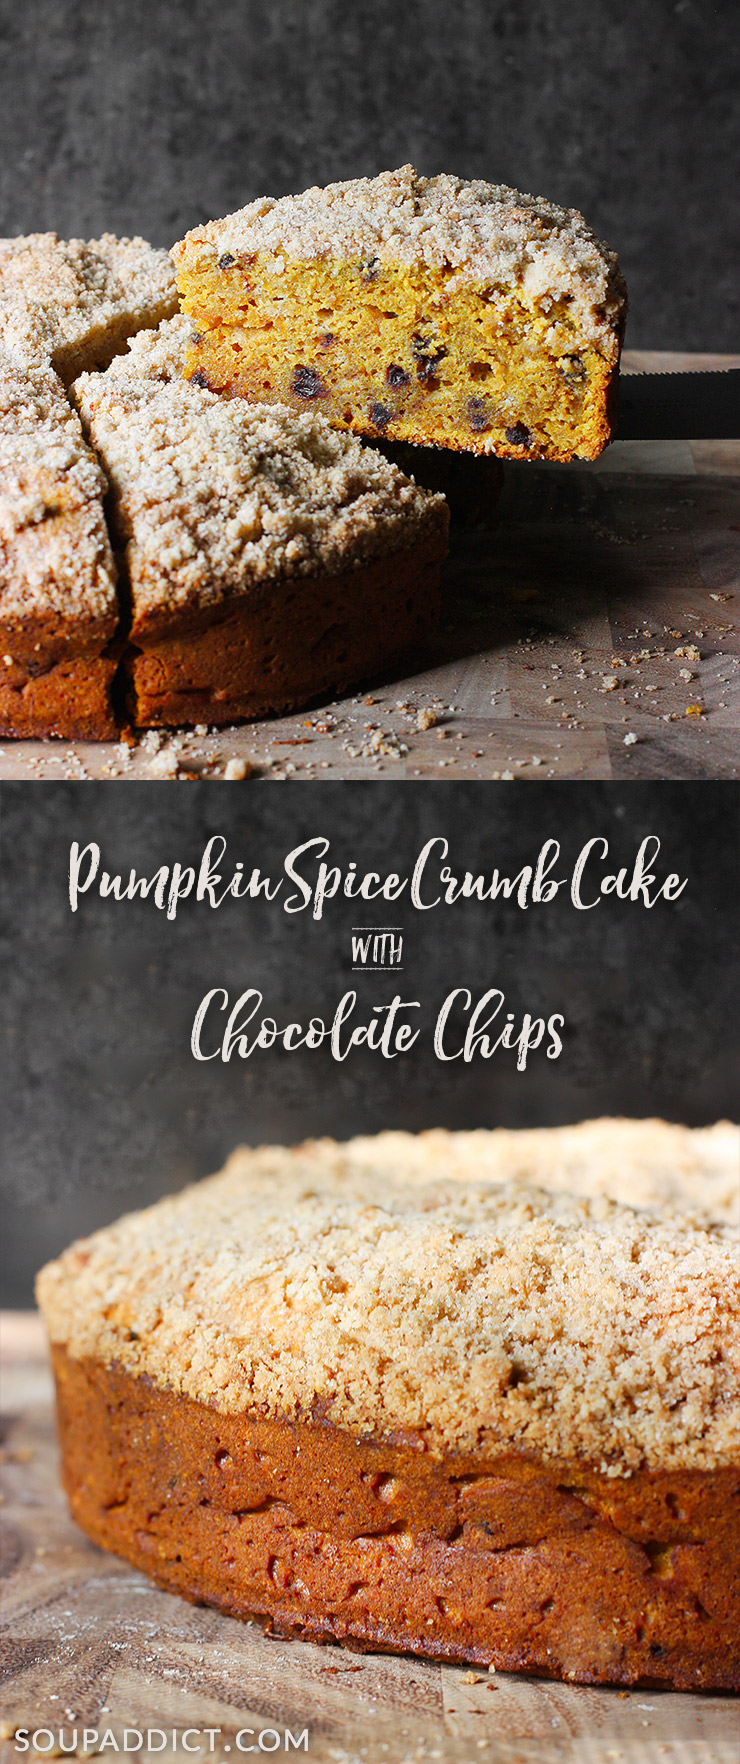 Pumpkin Spice Crumb Cake with Chocolate Chips from Soupaddict.com